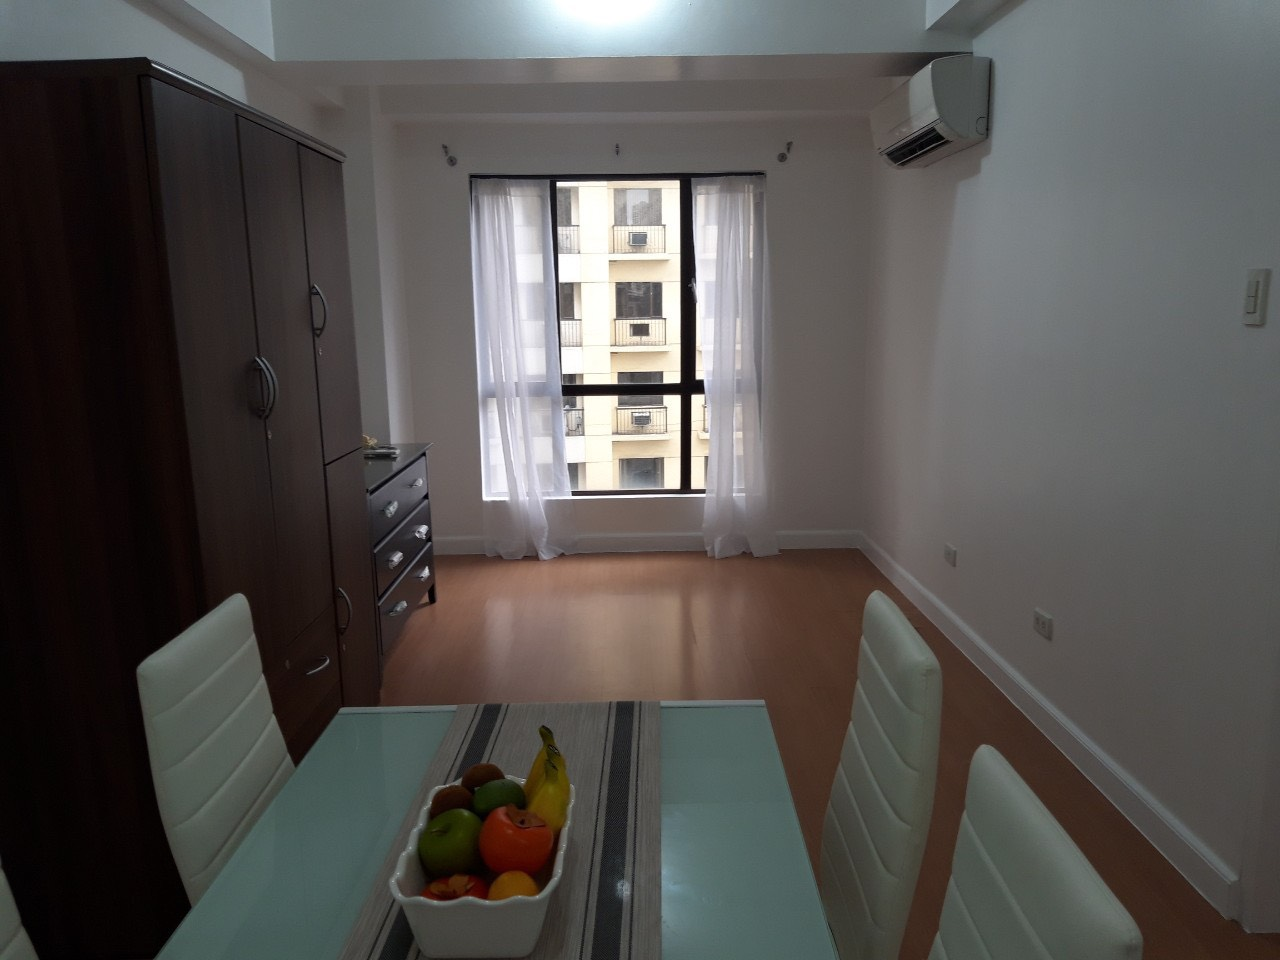 1 Bedroom Condo For Sale, Forbeswood Heights, BGC Dining Area View